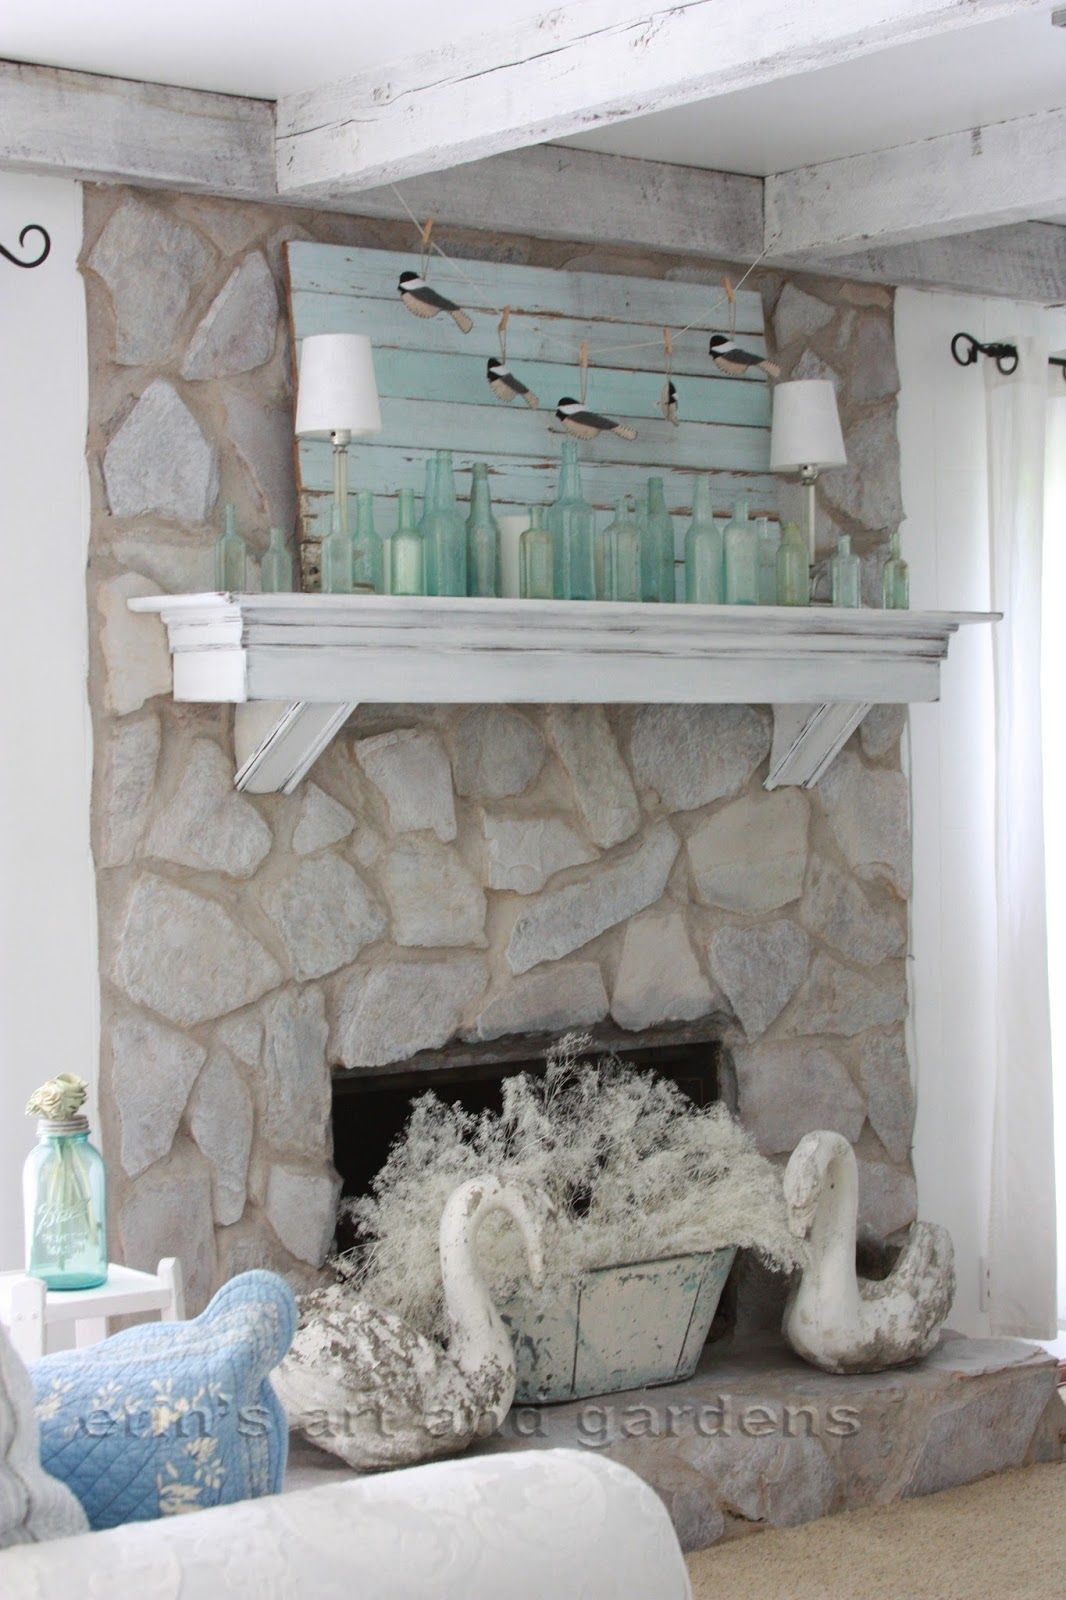 erins art and gardens chalk painted 1970s stone fireplace